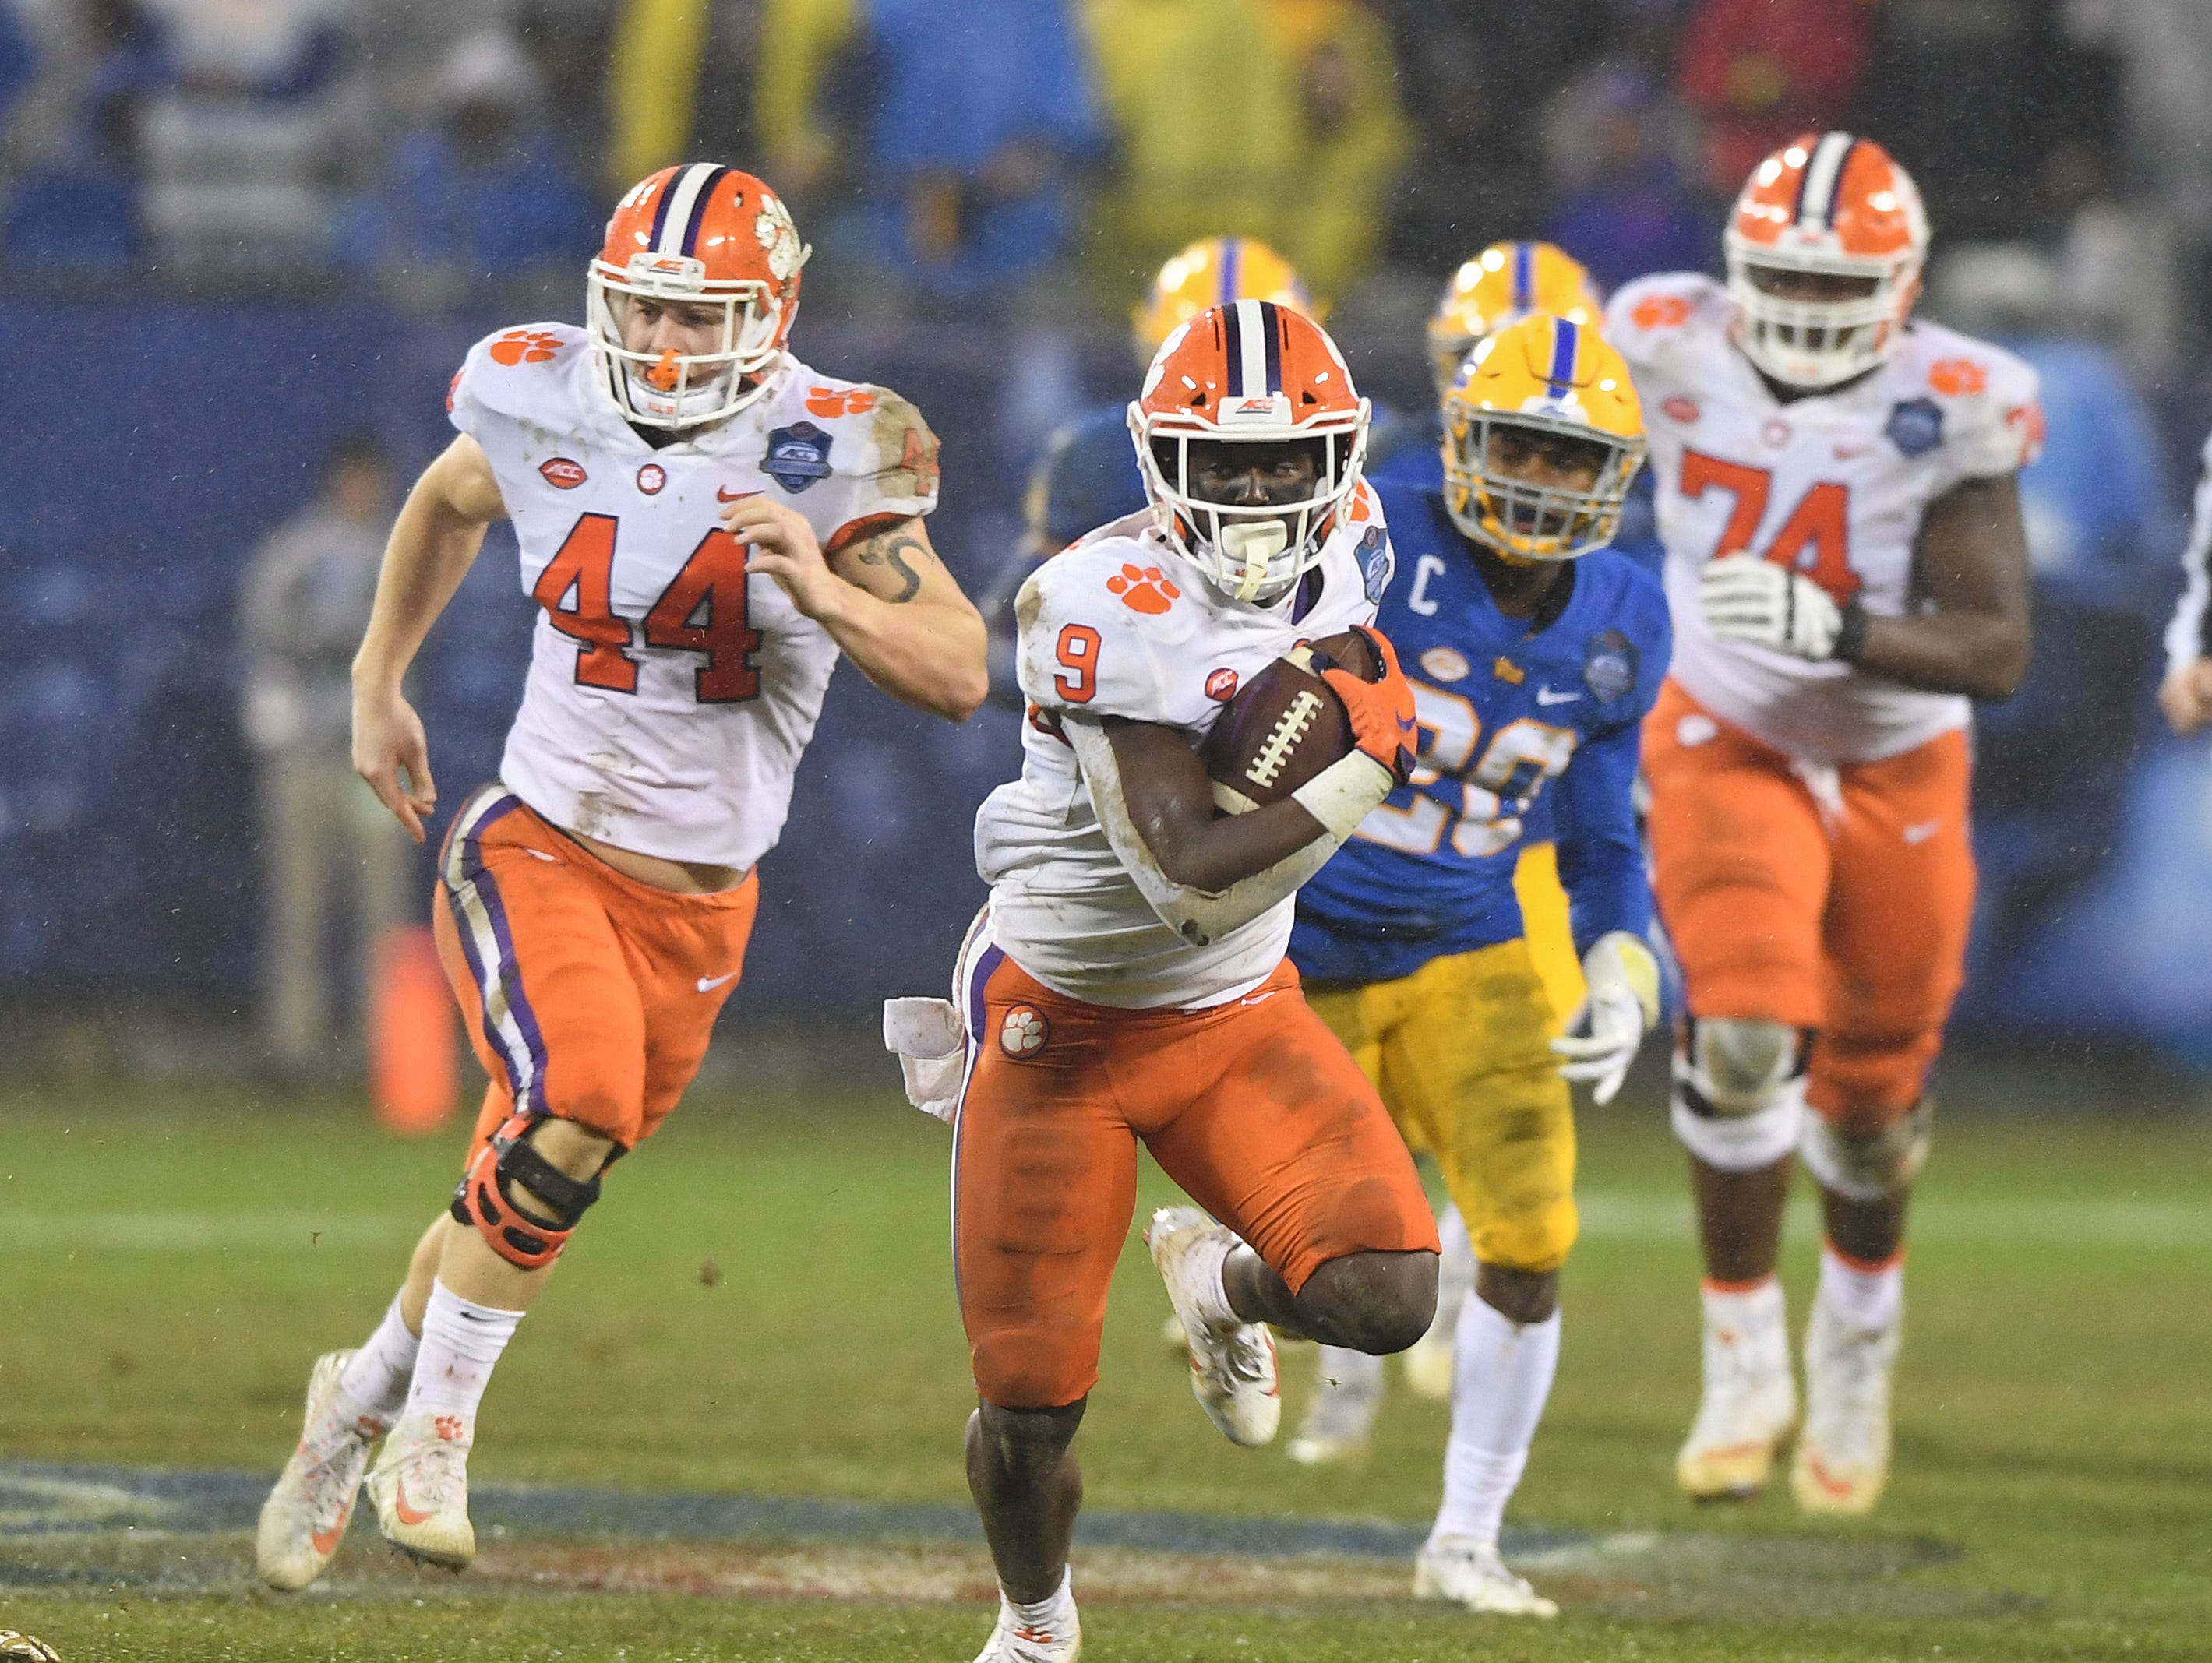 Clemson running back Travis Etienne (9) carries for a big gain against Pittsburgh during the 2nd quarter of the Dr. Pepper ACC Championship at Bank of America Stadium in Charlotte, N.C. Saturday, December 1, 2018.